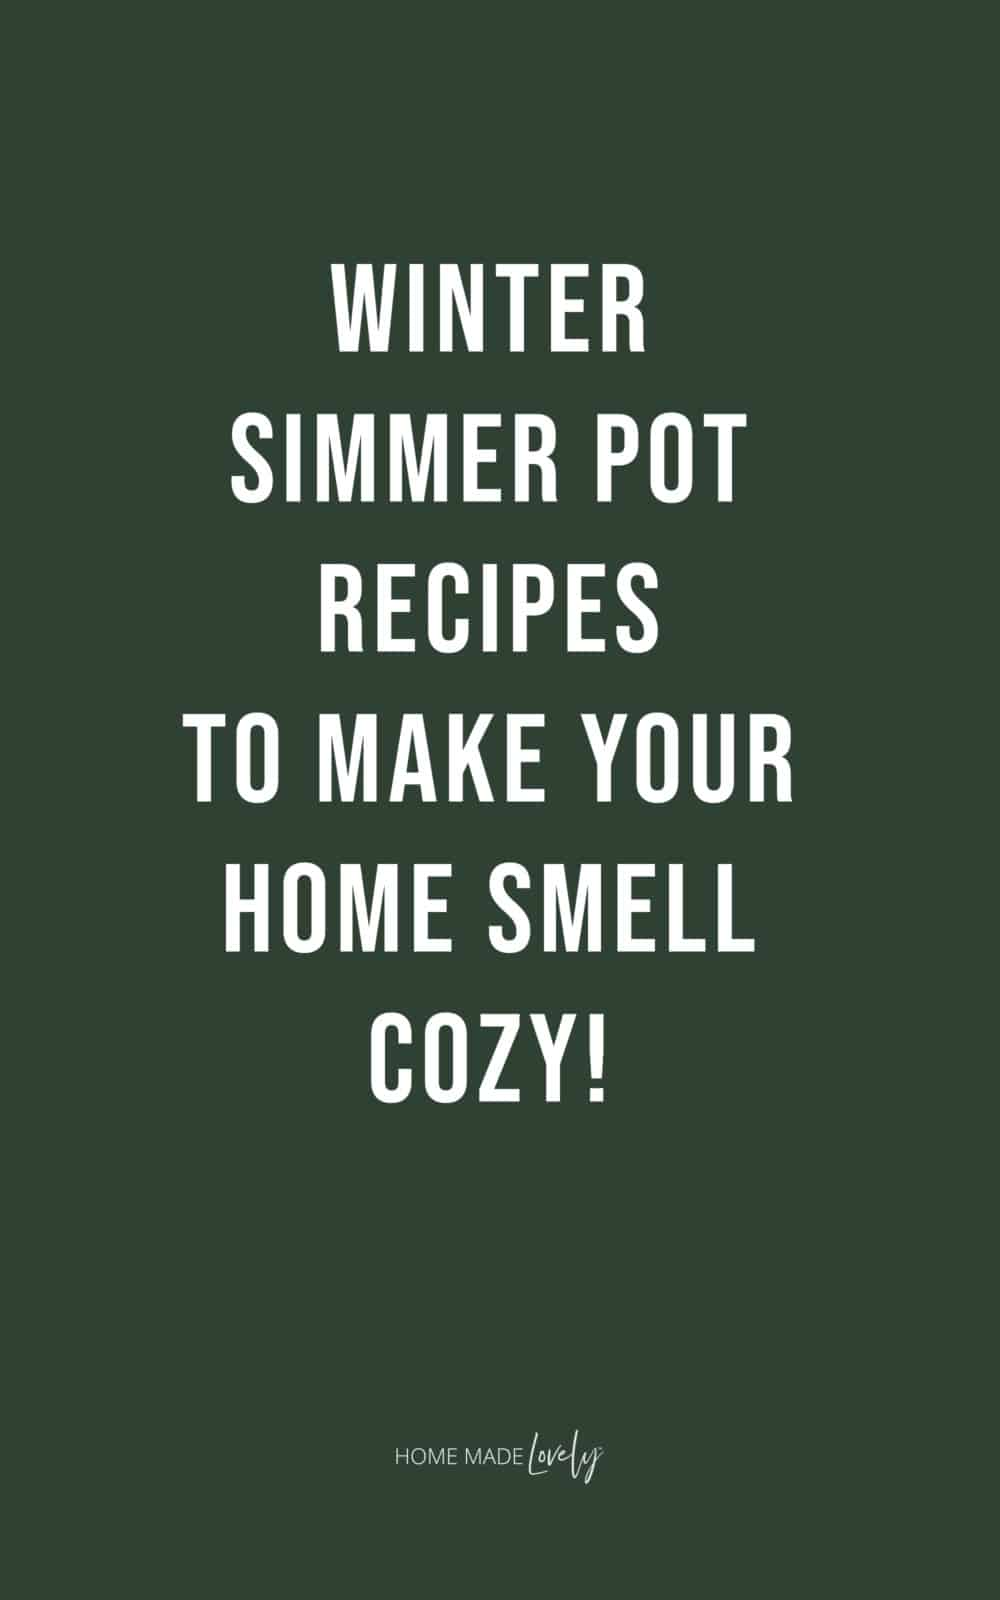 winter simmer post recipes text overlay over dark green